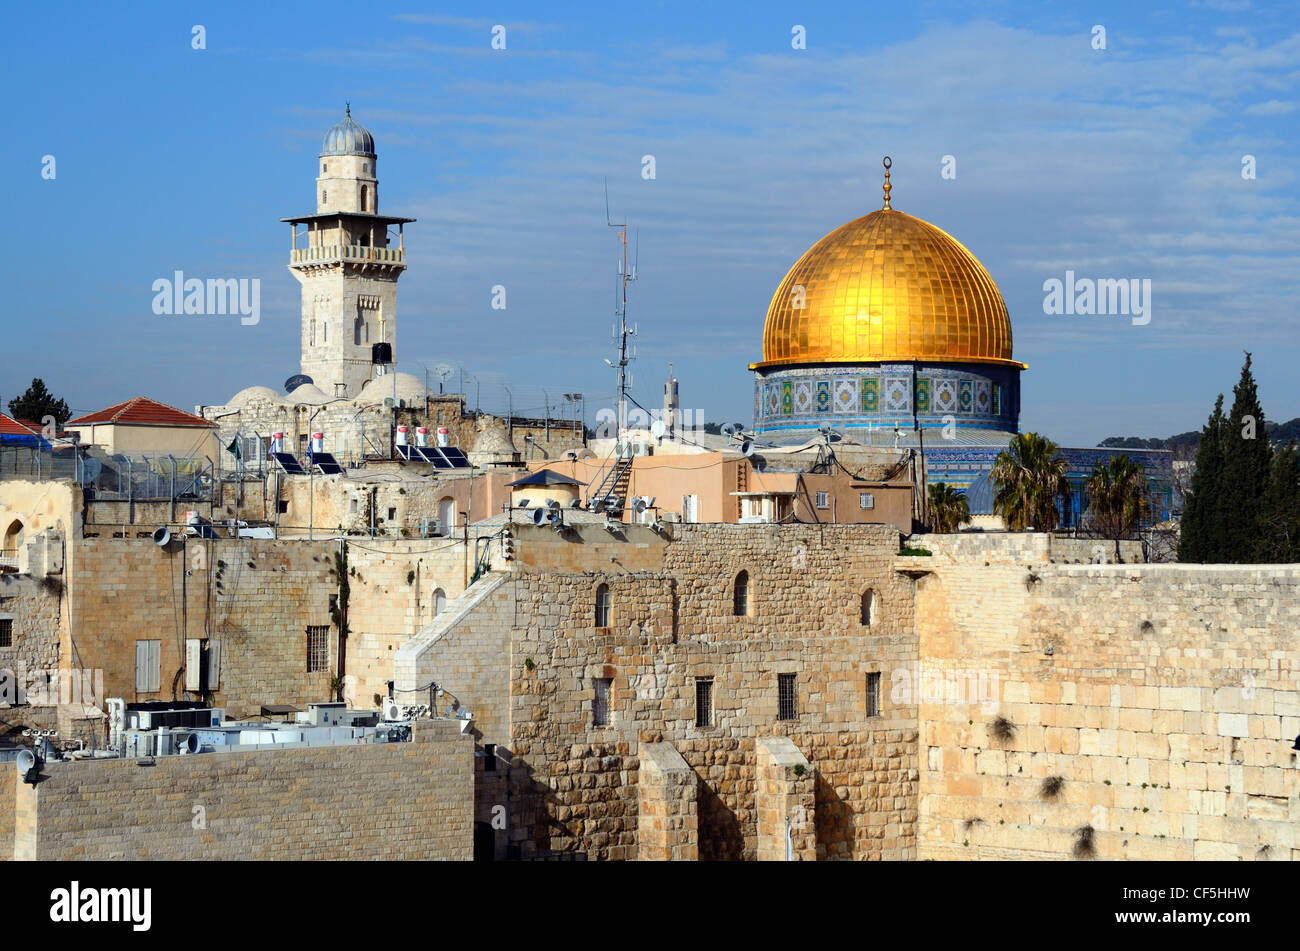 Western Wall and Dome of the Rock in Jerusalem, Israel - Stock Image